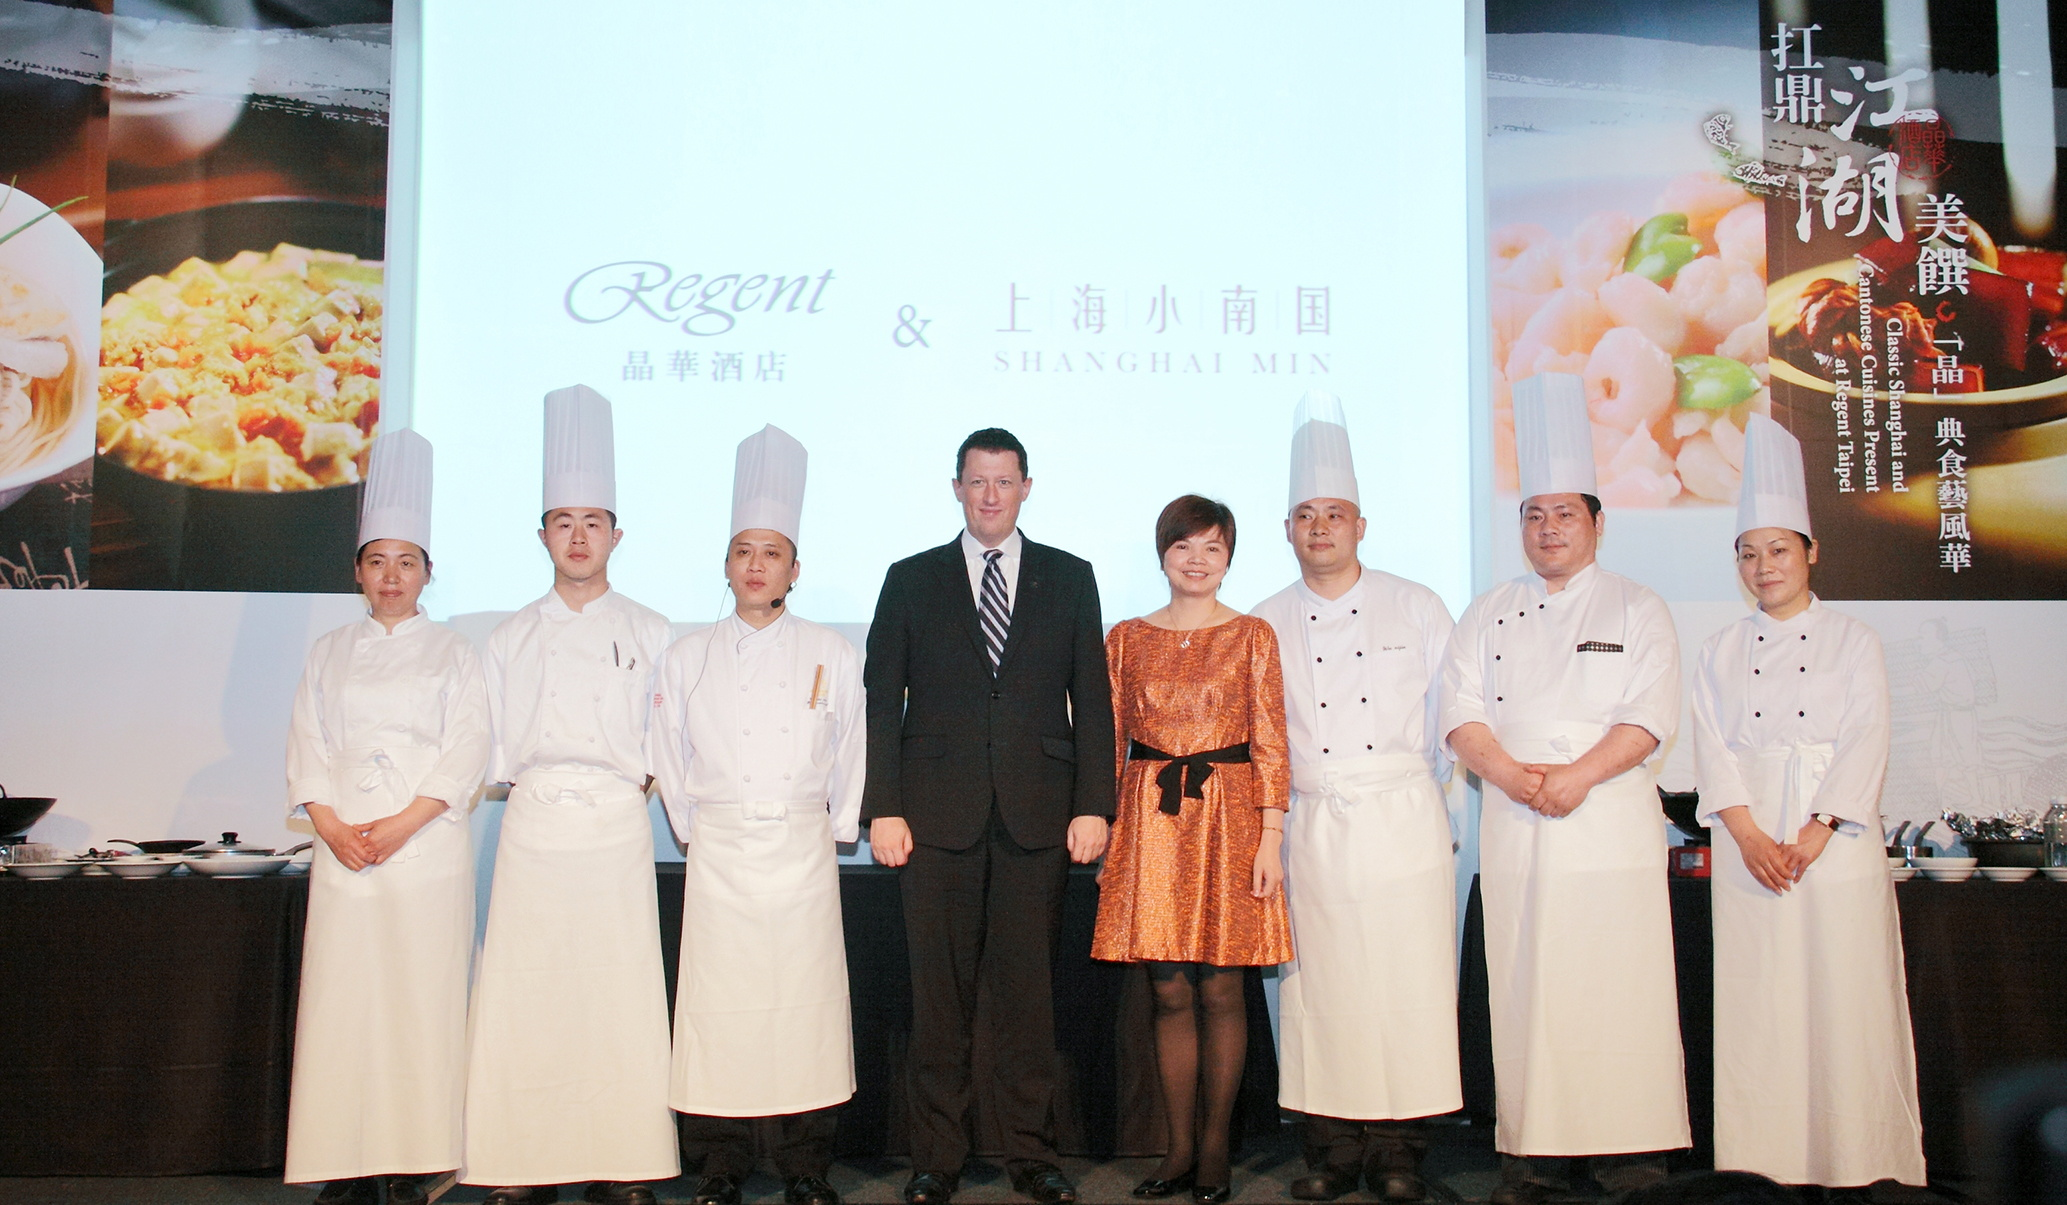 Authentic Shanghai Cuisine Culture Debuts at Silks House and Silks Palace